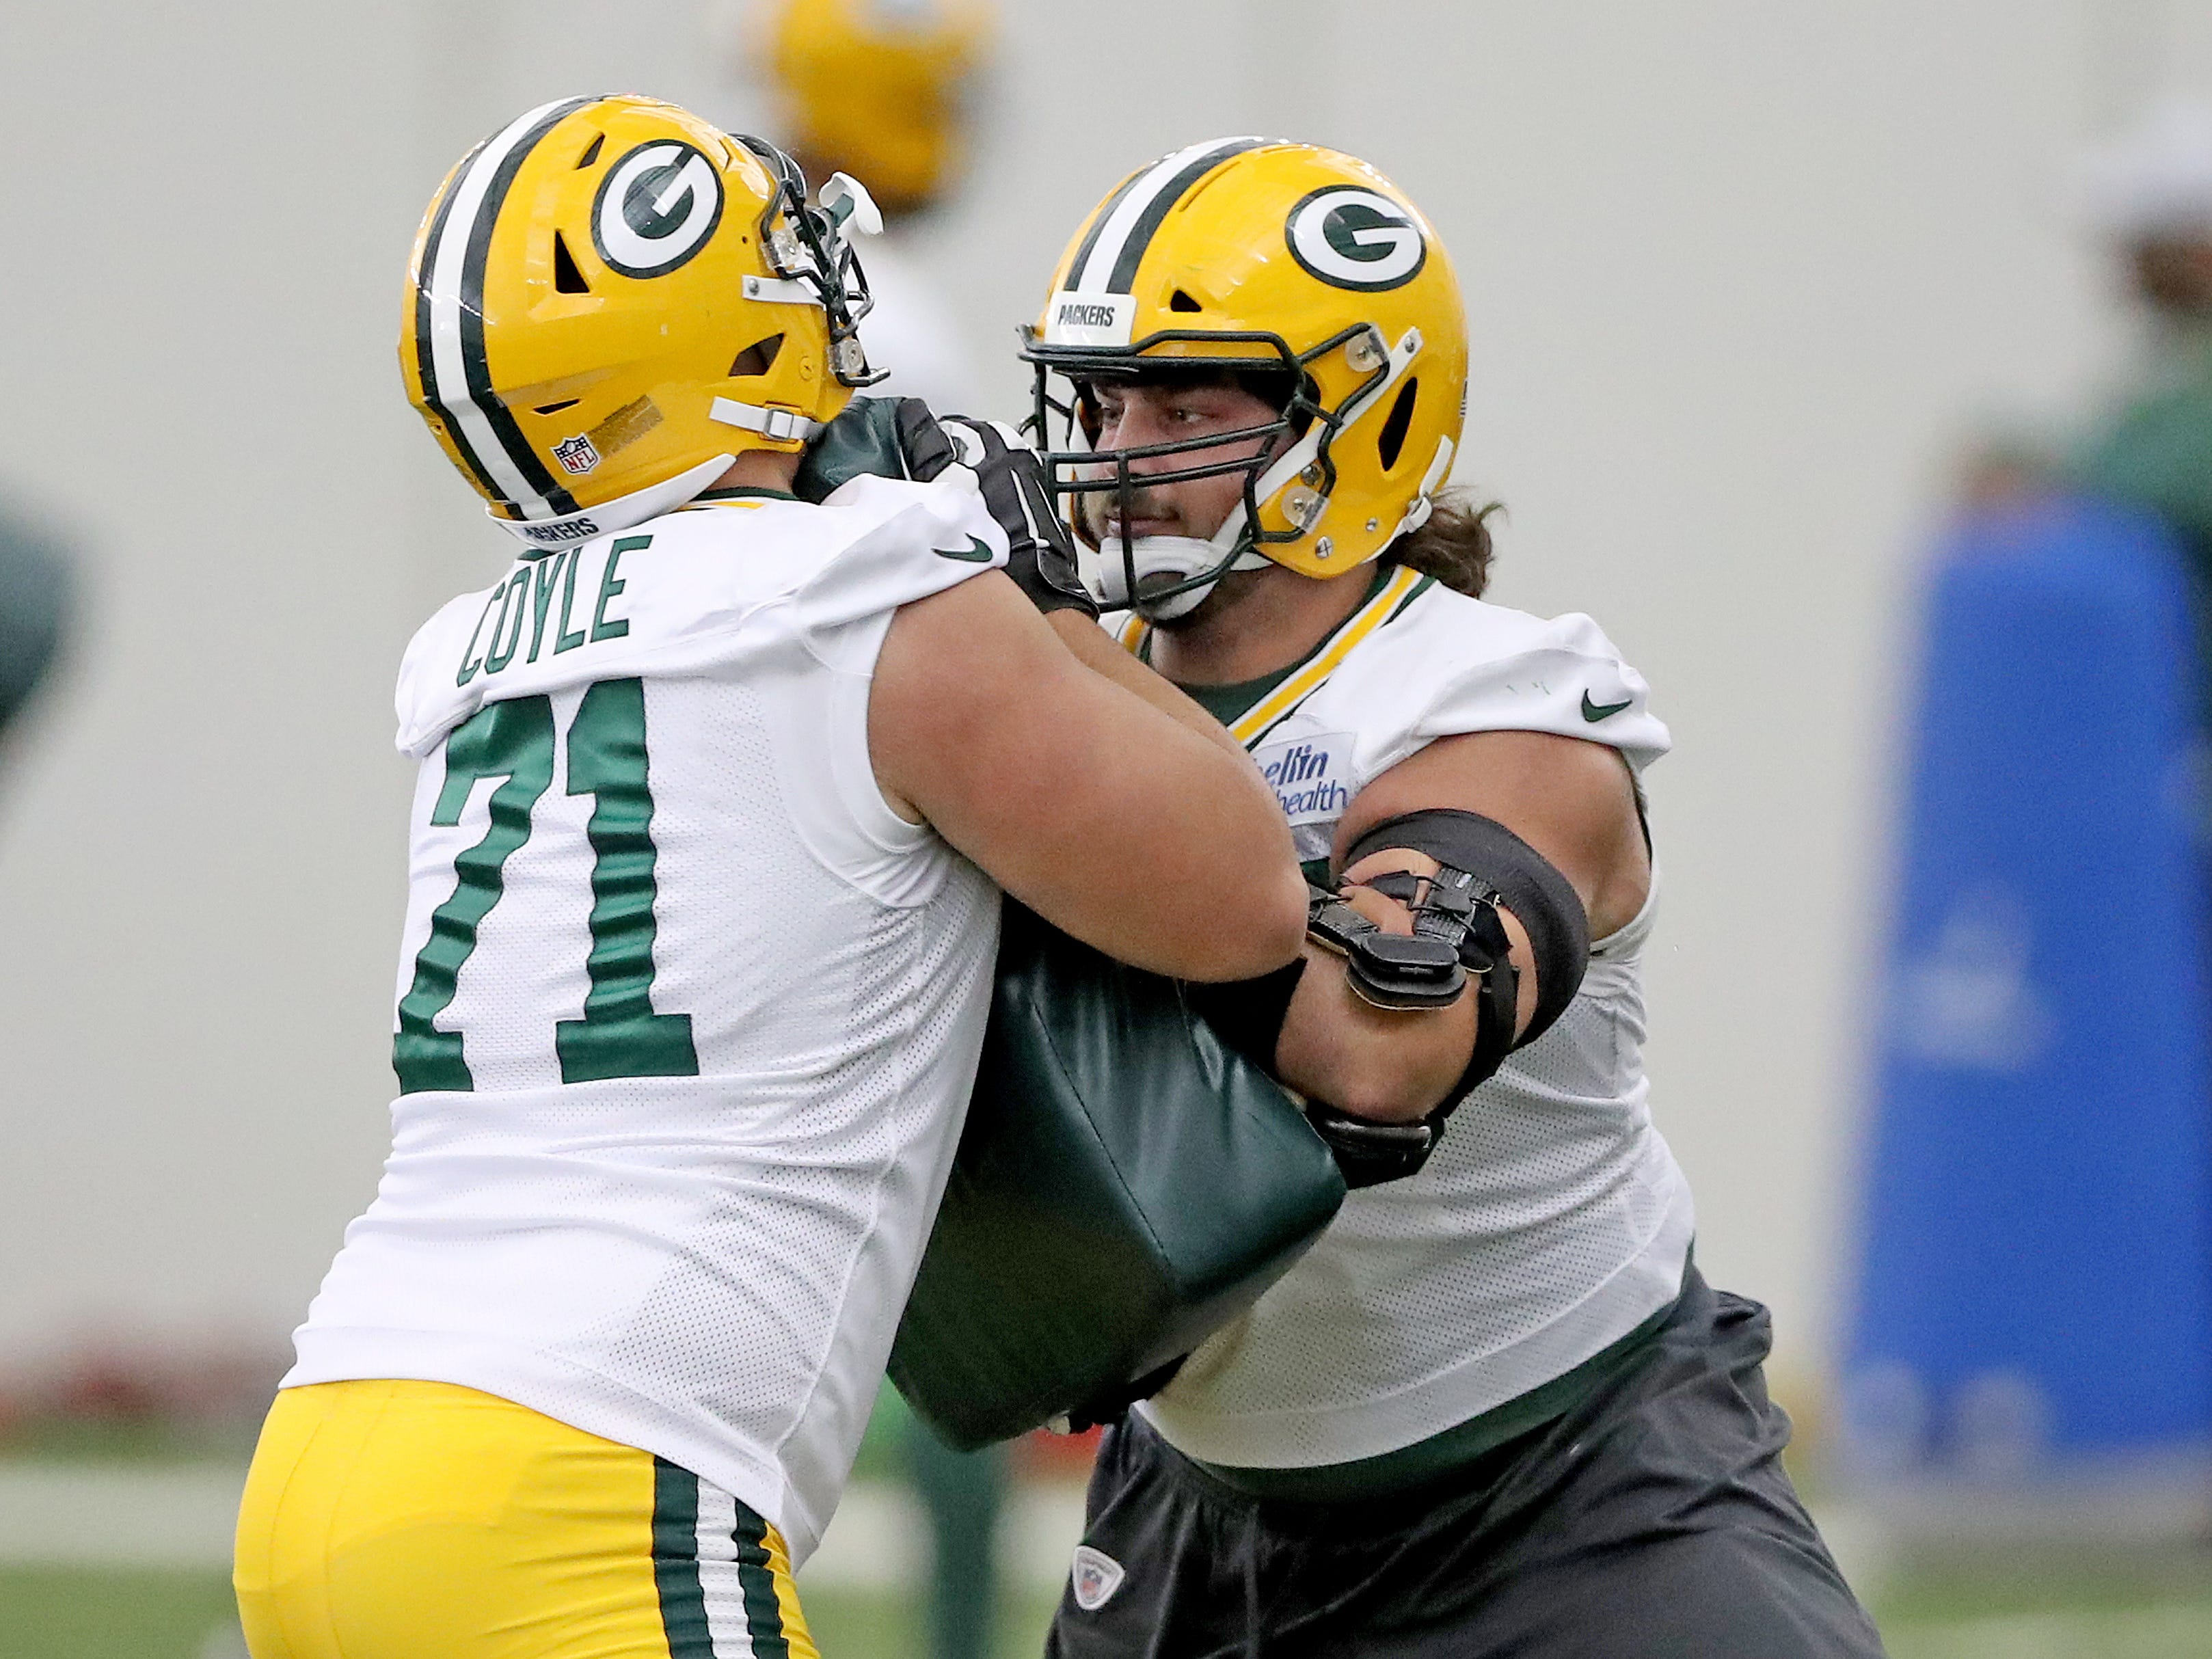 Green Bay Packers offensive tackle David Bakhtiari (69) spars with guard Anthony Coyle (71) during practice inside the Hutson Center Thursday,October 11, 2018 in Ashwaubenon, Wis.